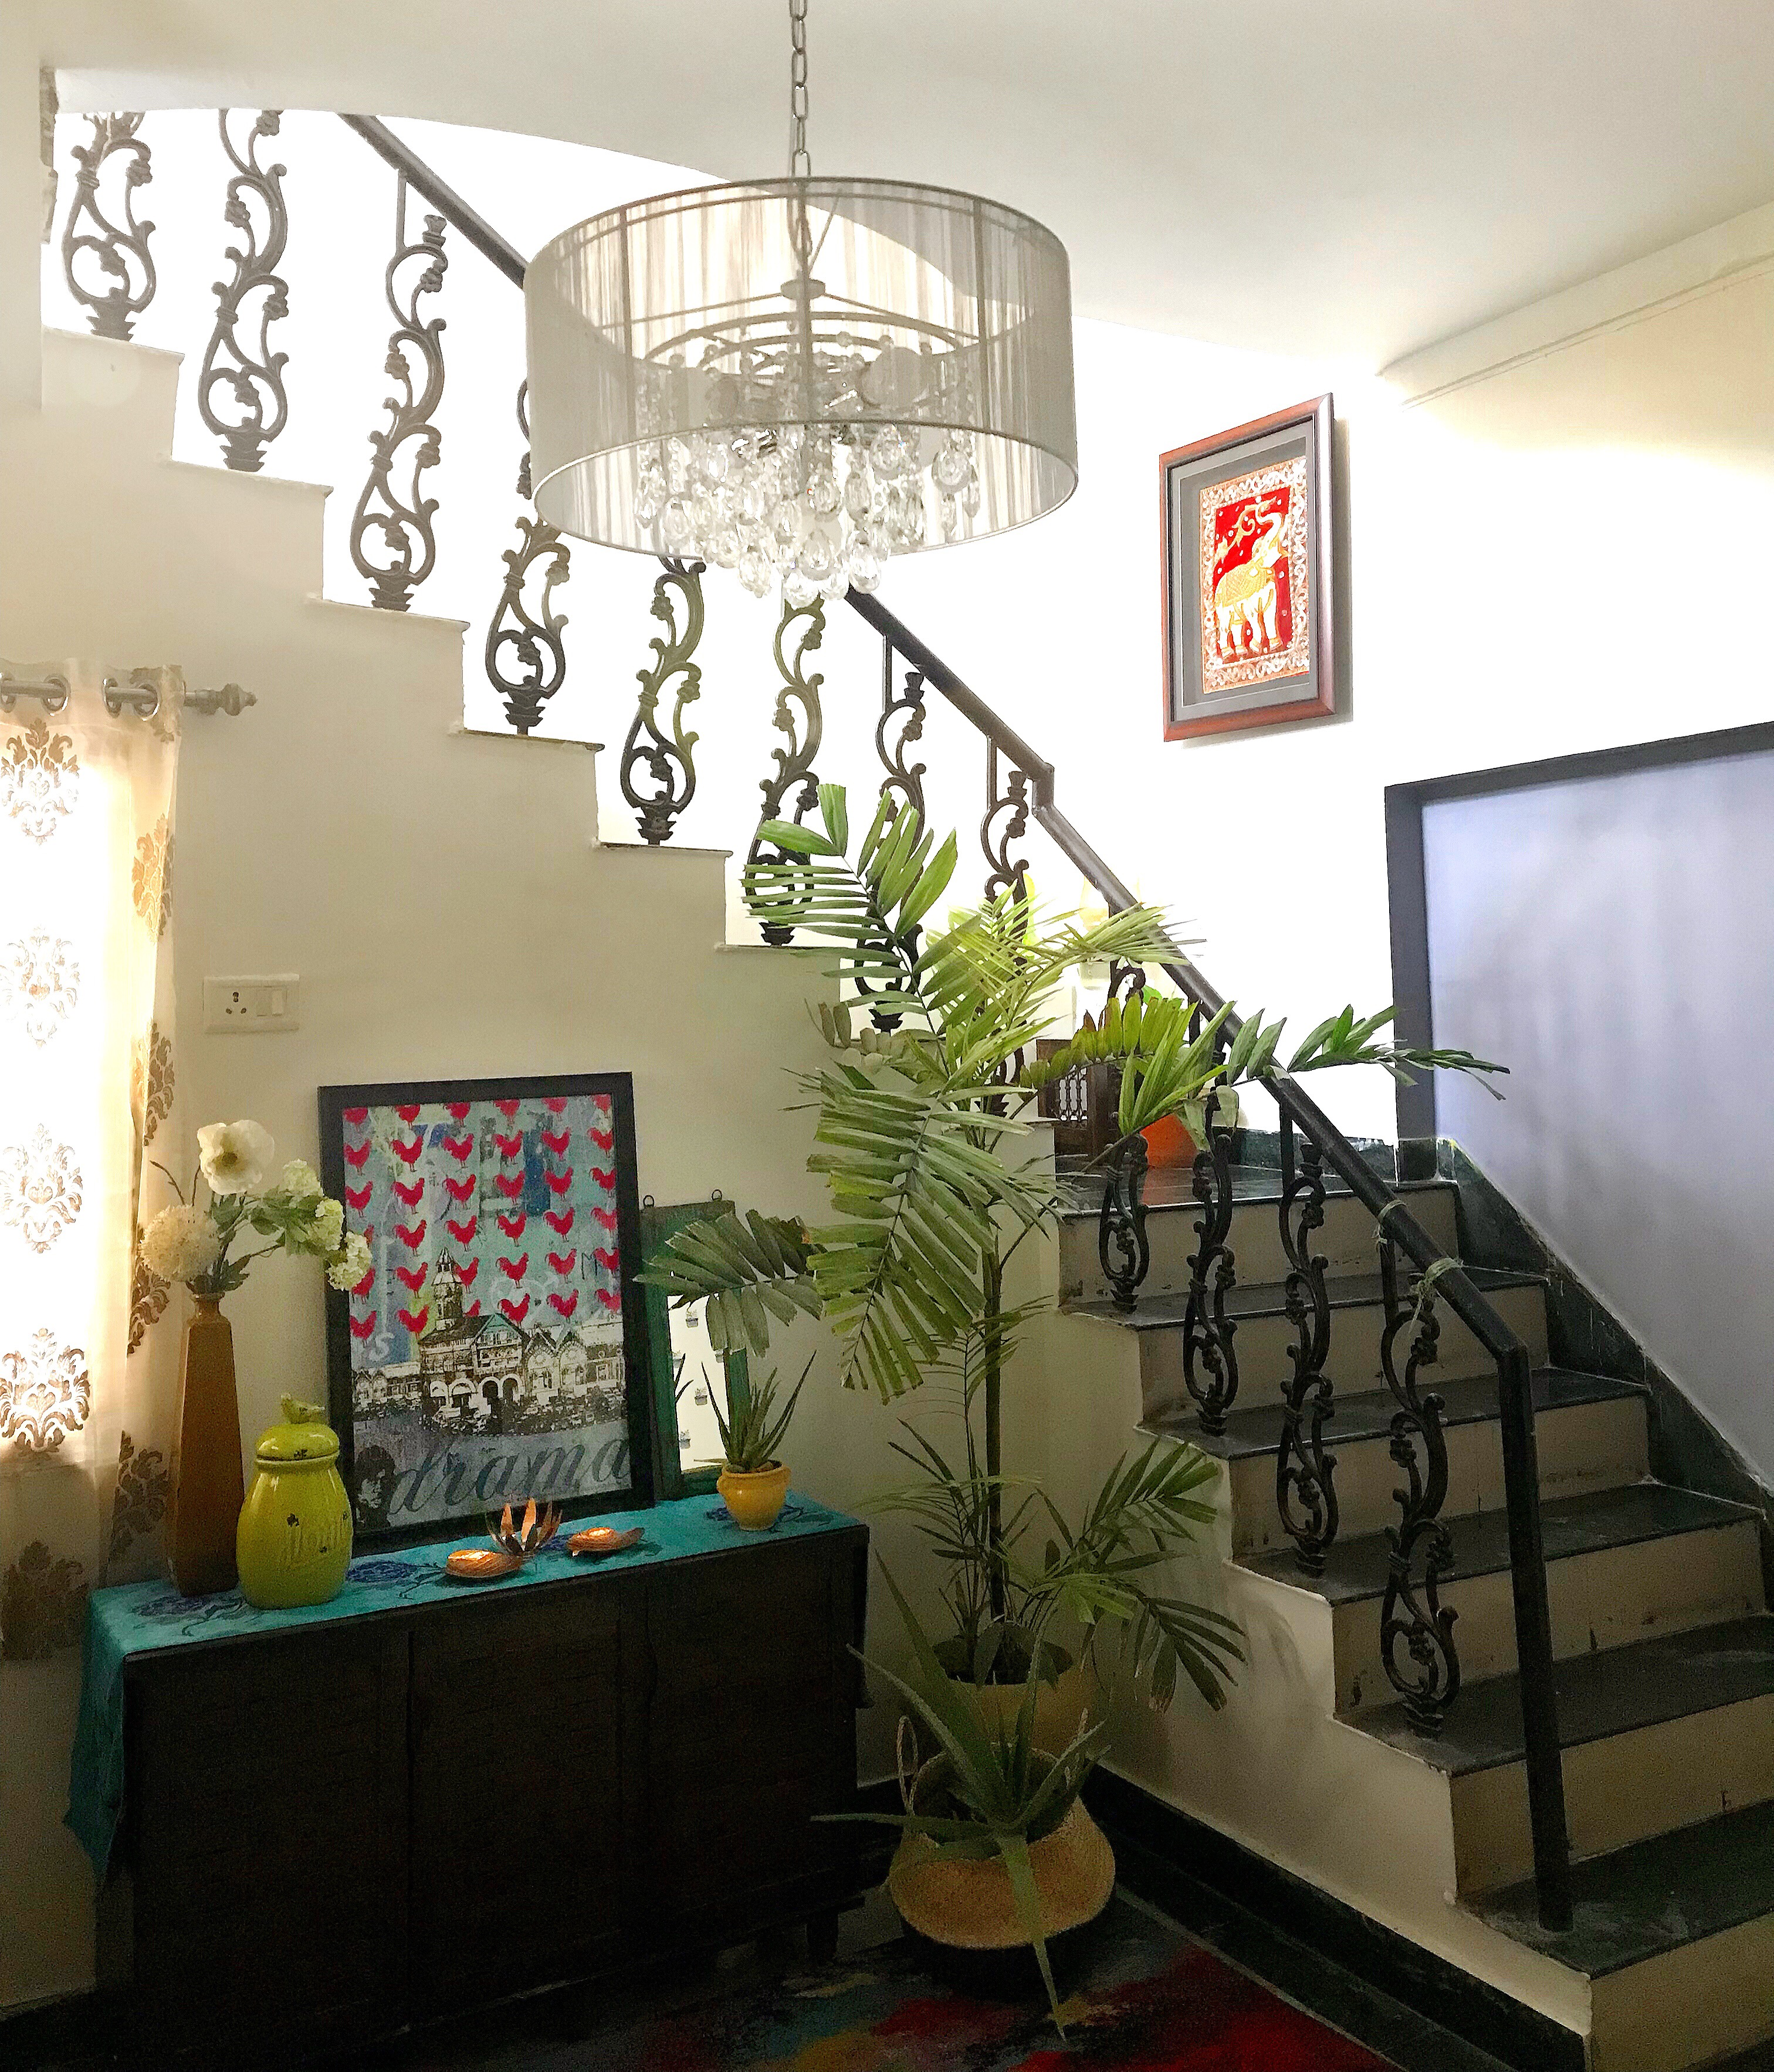 5 ways to bring life into a dark corner - under the staircase